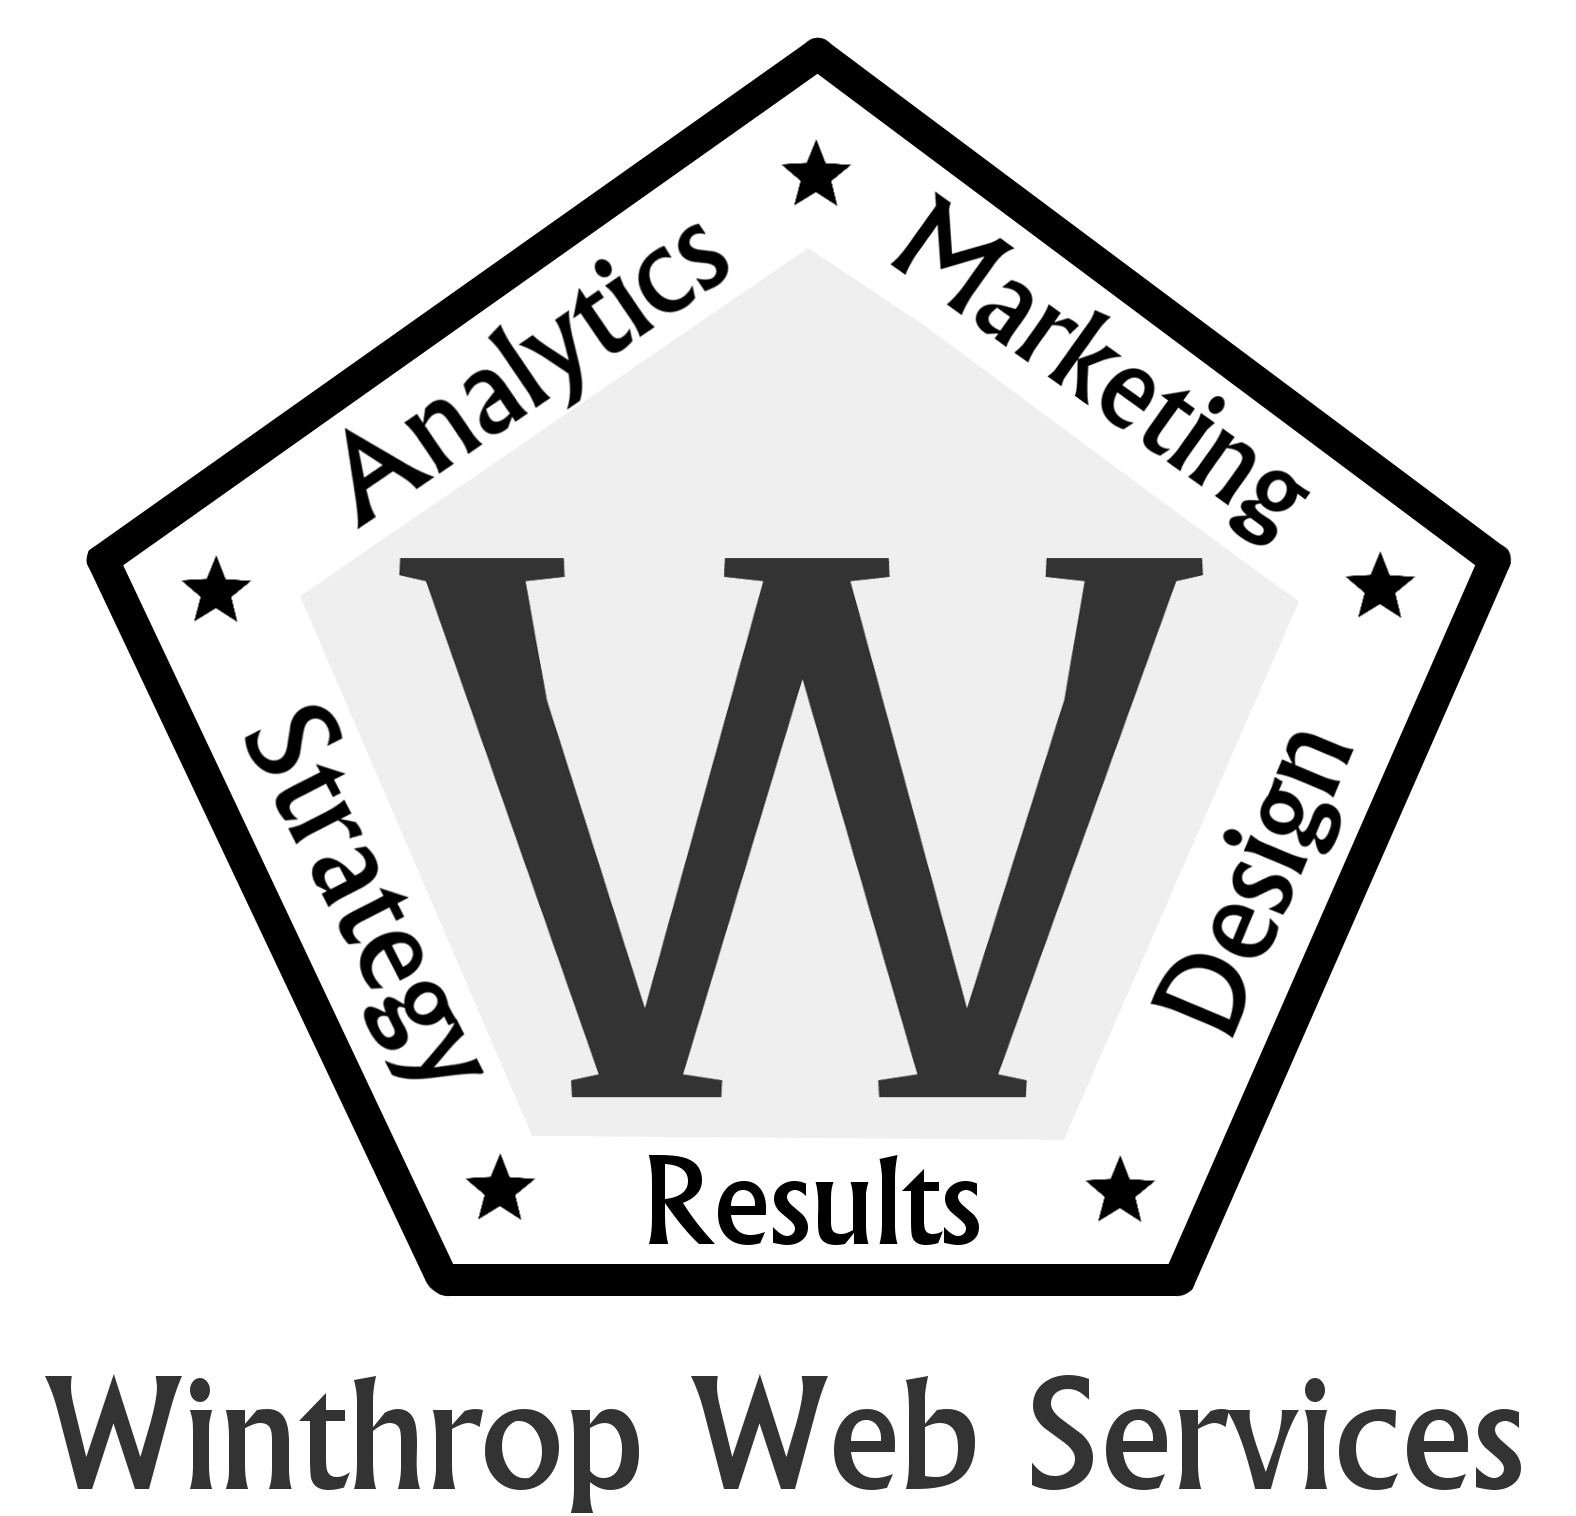 Winthrop Web Services